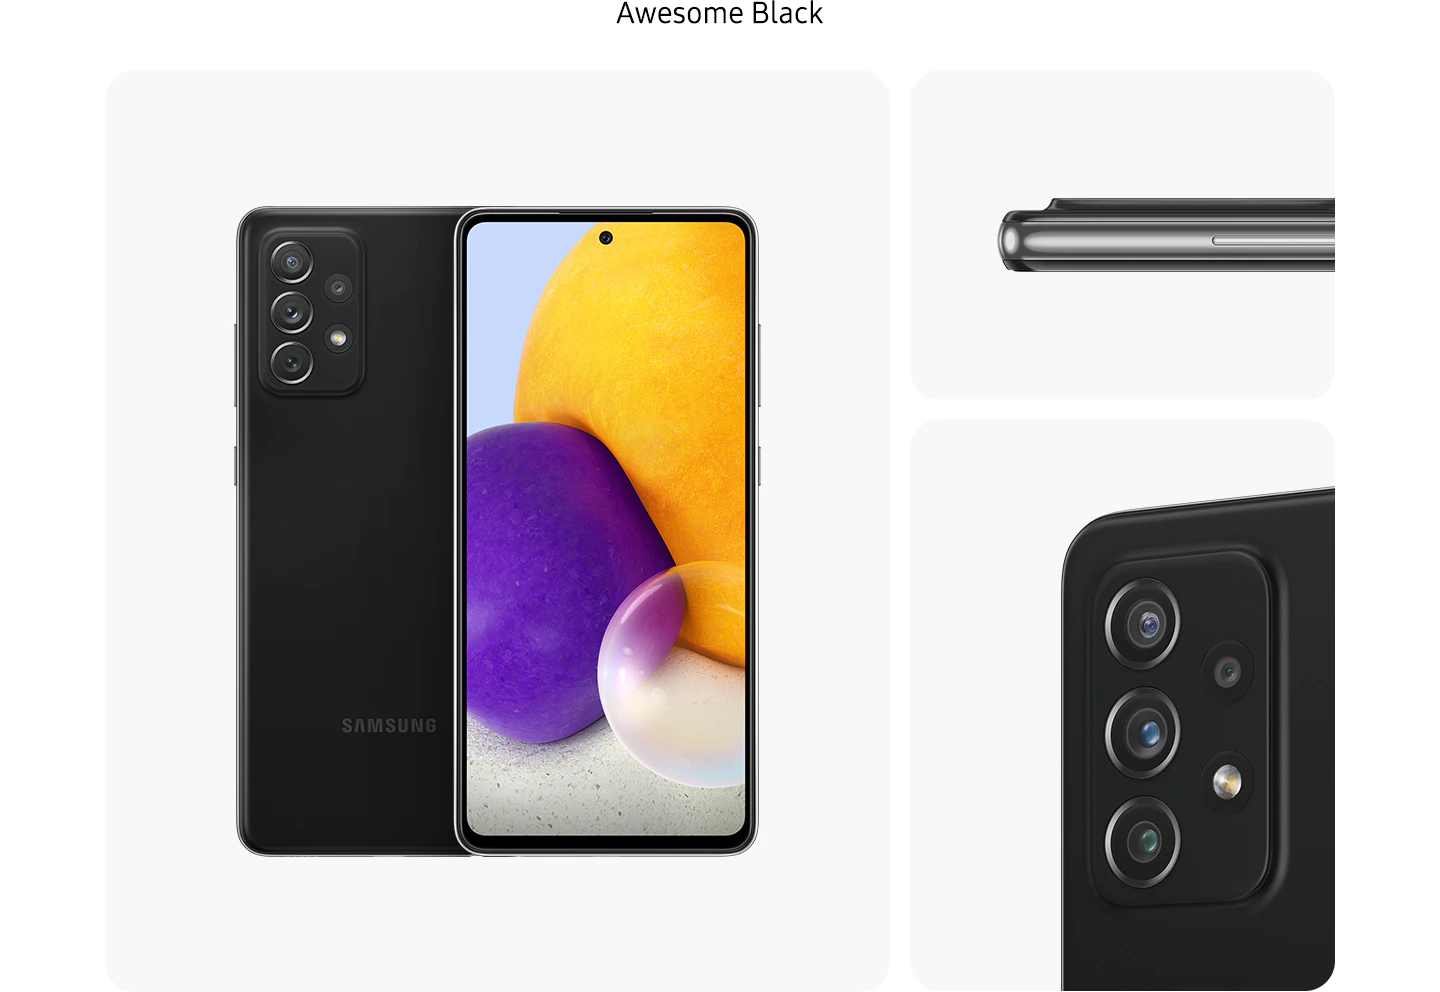 Galaxy A72 in Awesome Black, seen from multiple angles to show the design: rear, front, side and close-up on the rear camera.